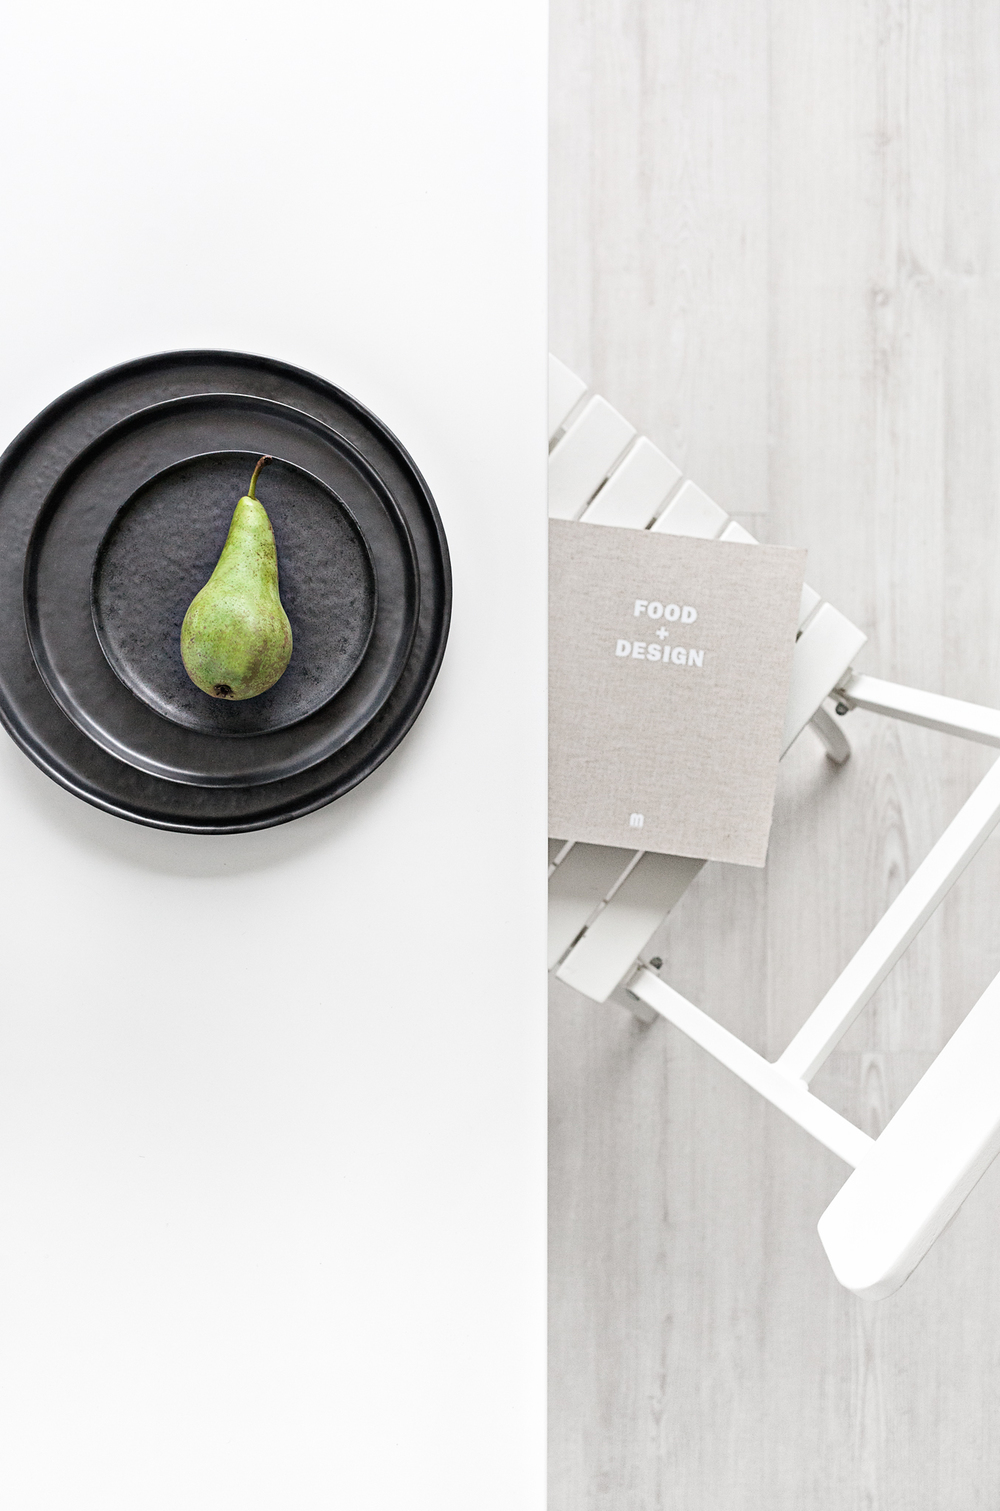 Pure Tableware & Ovenware from Pascale Naessens for Serax | FOOD + DESIGN book by Serax